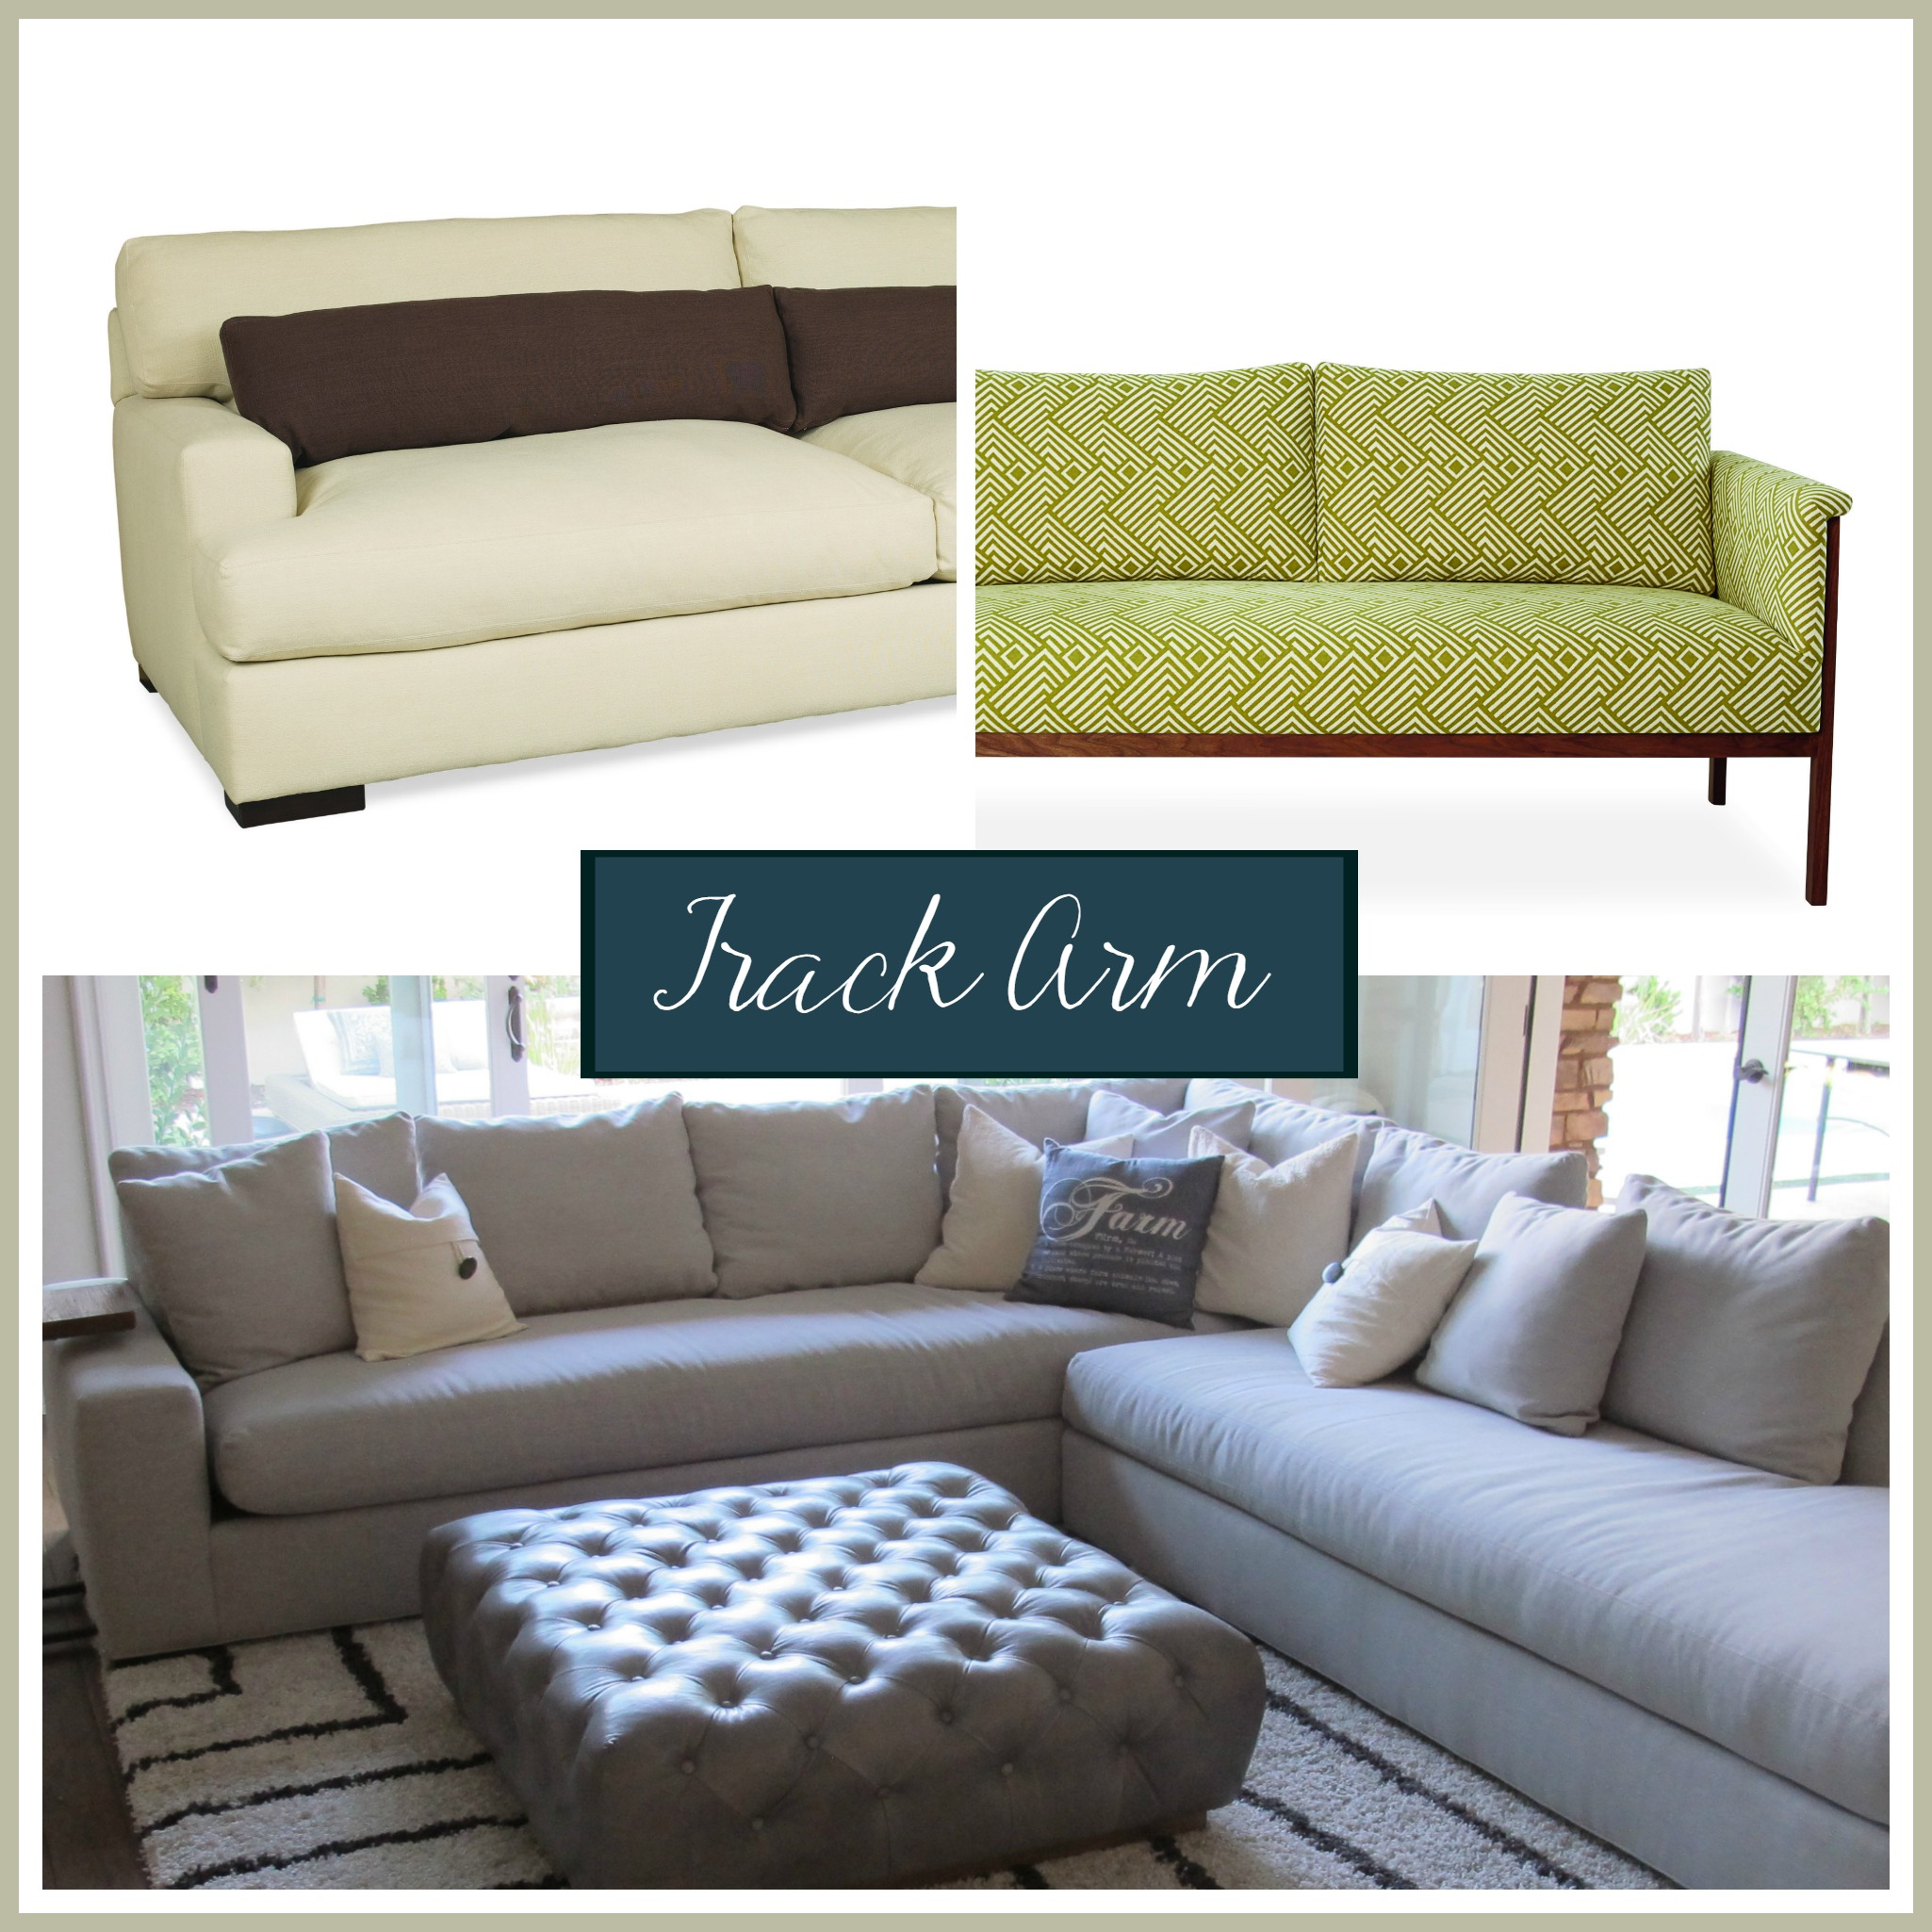 Sofa Arm Styles Sofa Arm Styles Home Design TheSofa : track arm sofa style from thesofa.droogkast.com size 2050 x 2050 jpeg 716kB